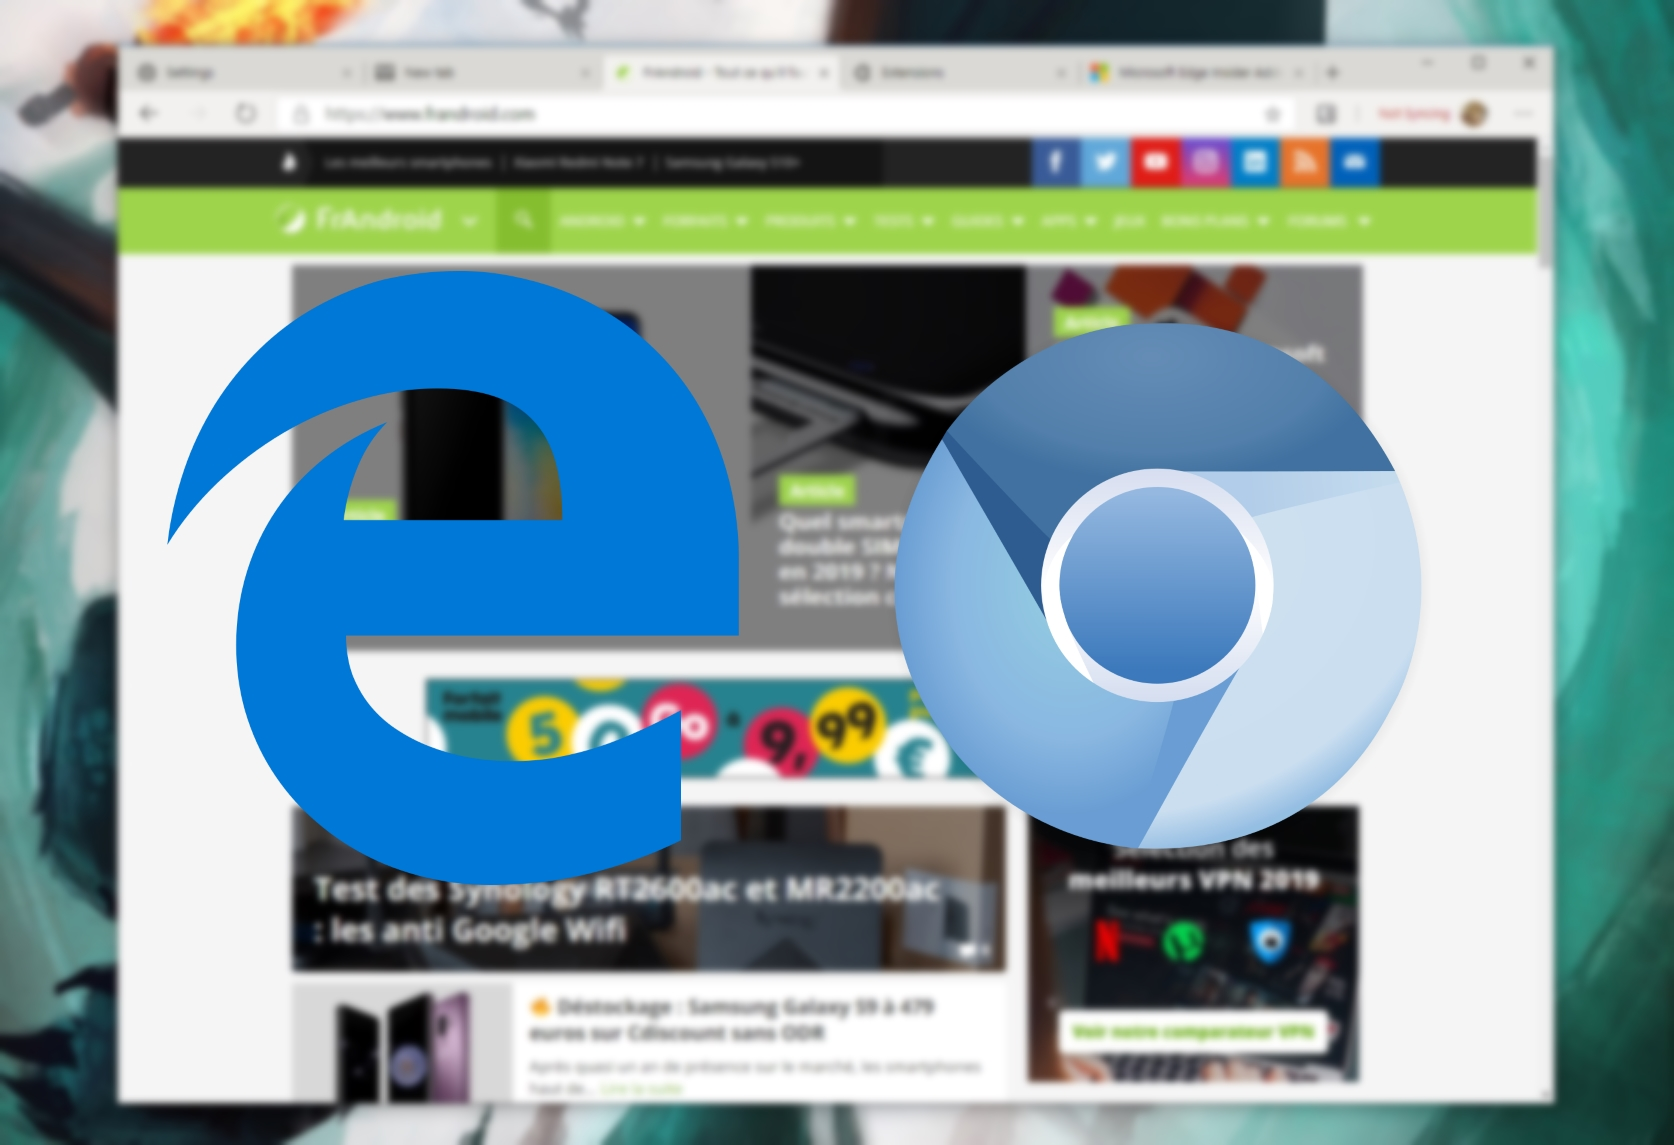 Microsoft Edge based on Google Chrome: Our pictures and